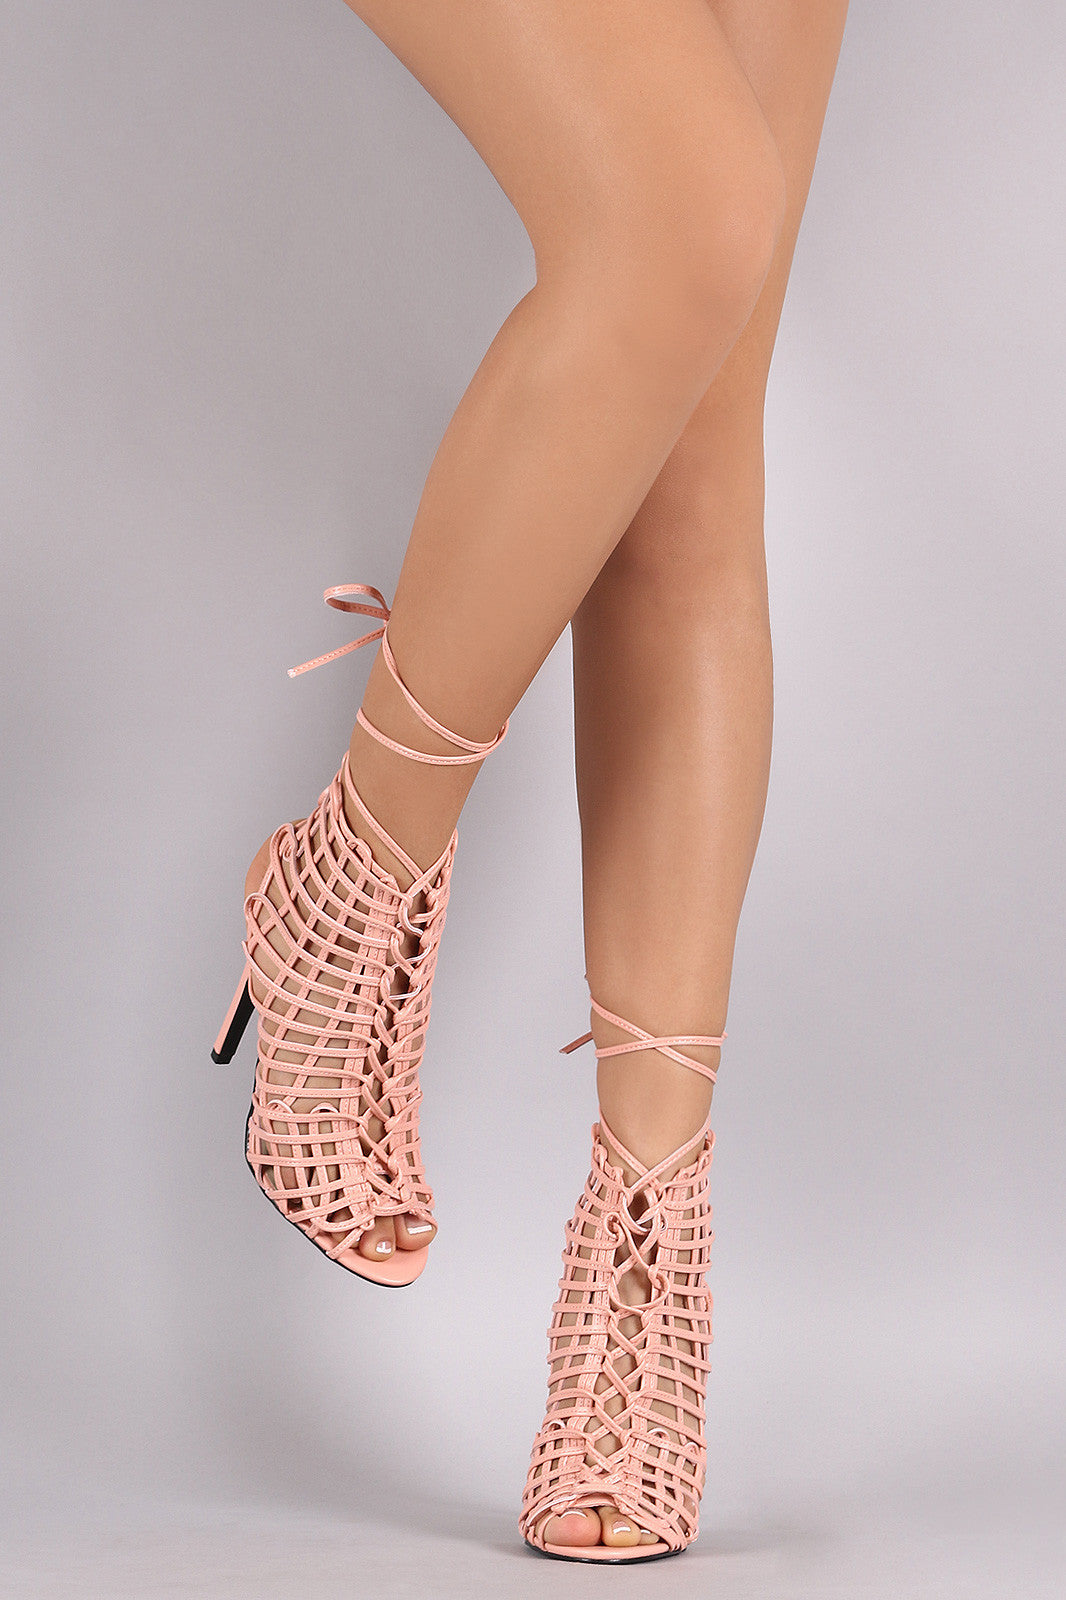 Privileged Webbed Laces Mule Heel - Thick 'N' Curvy Shop - 2